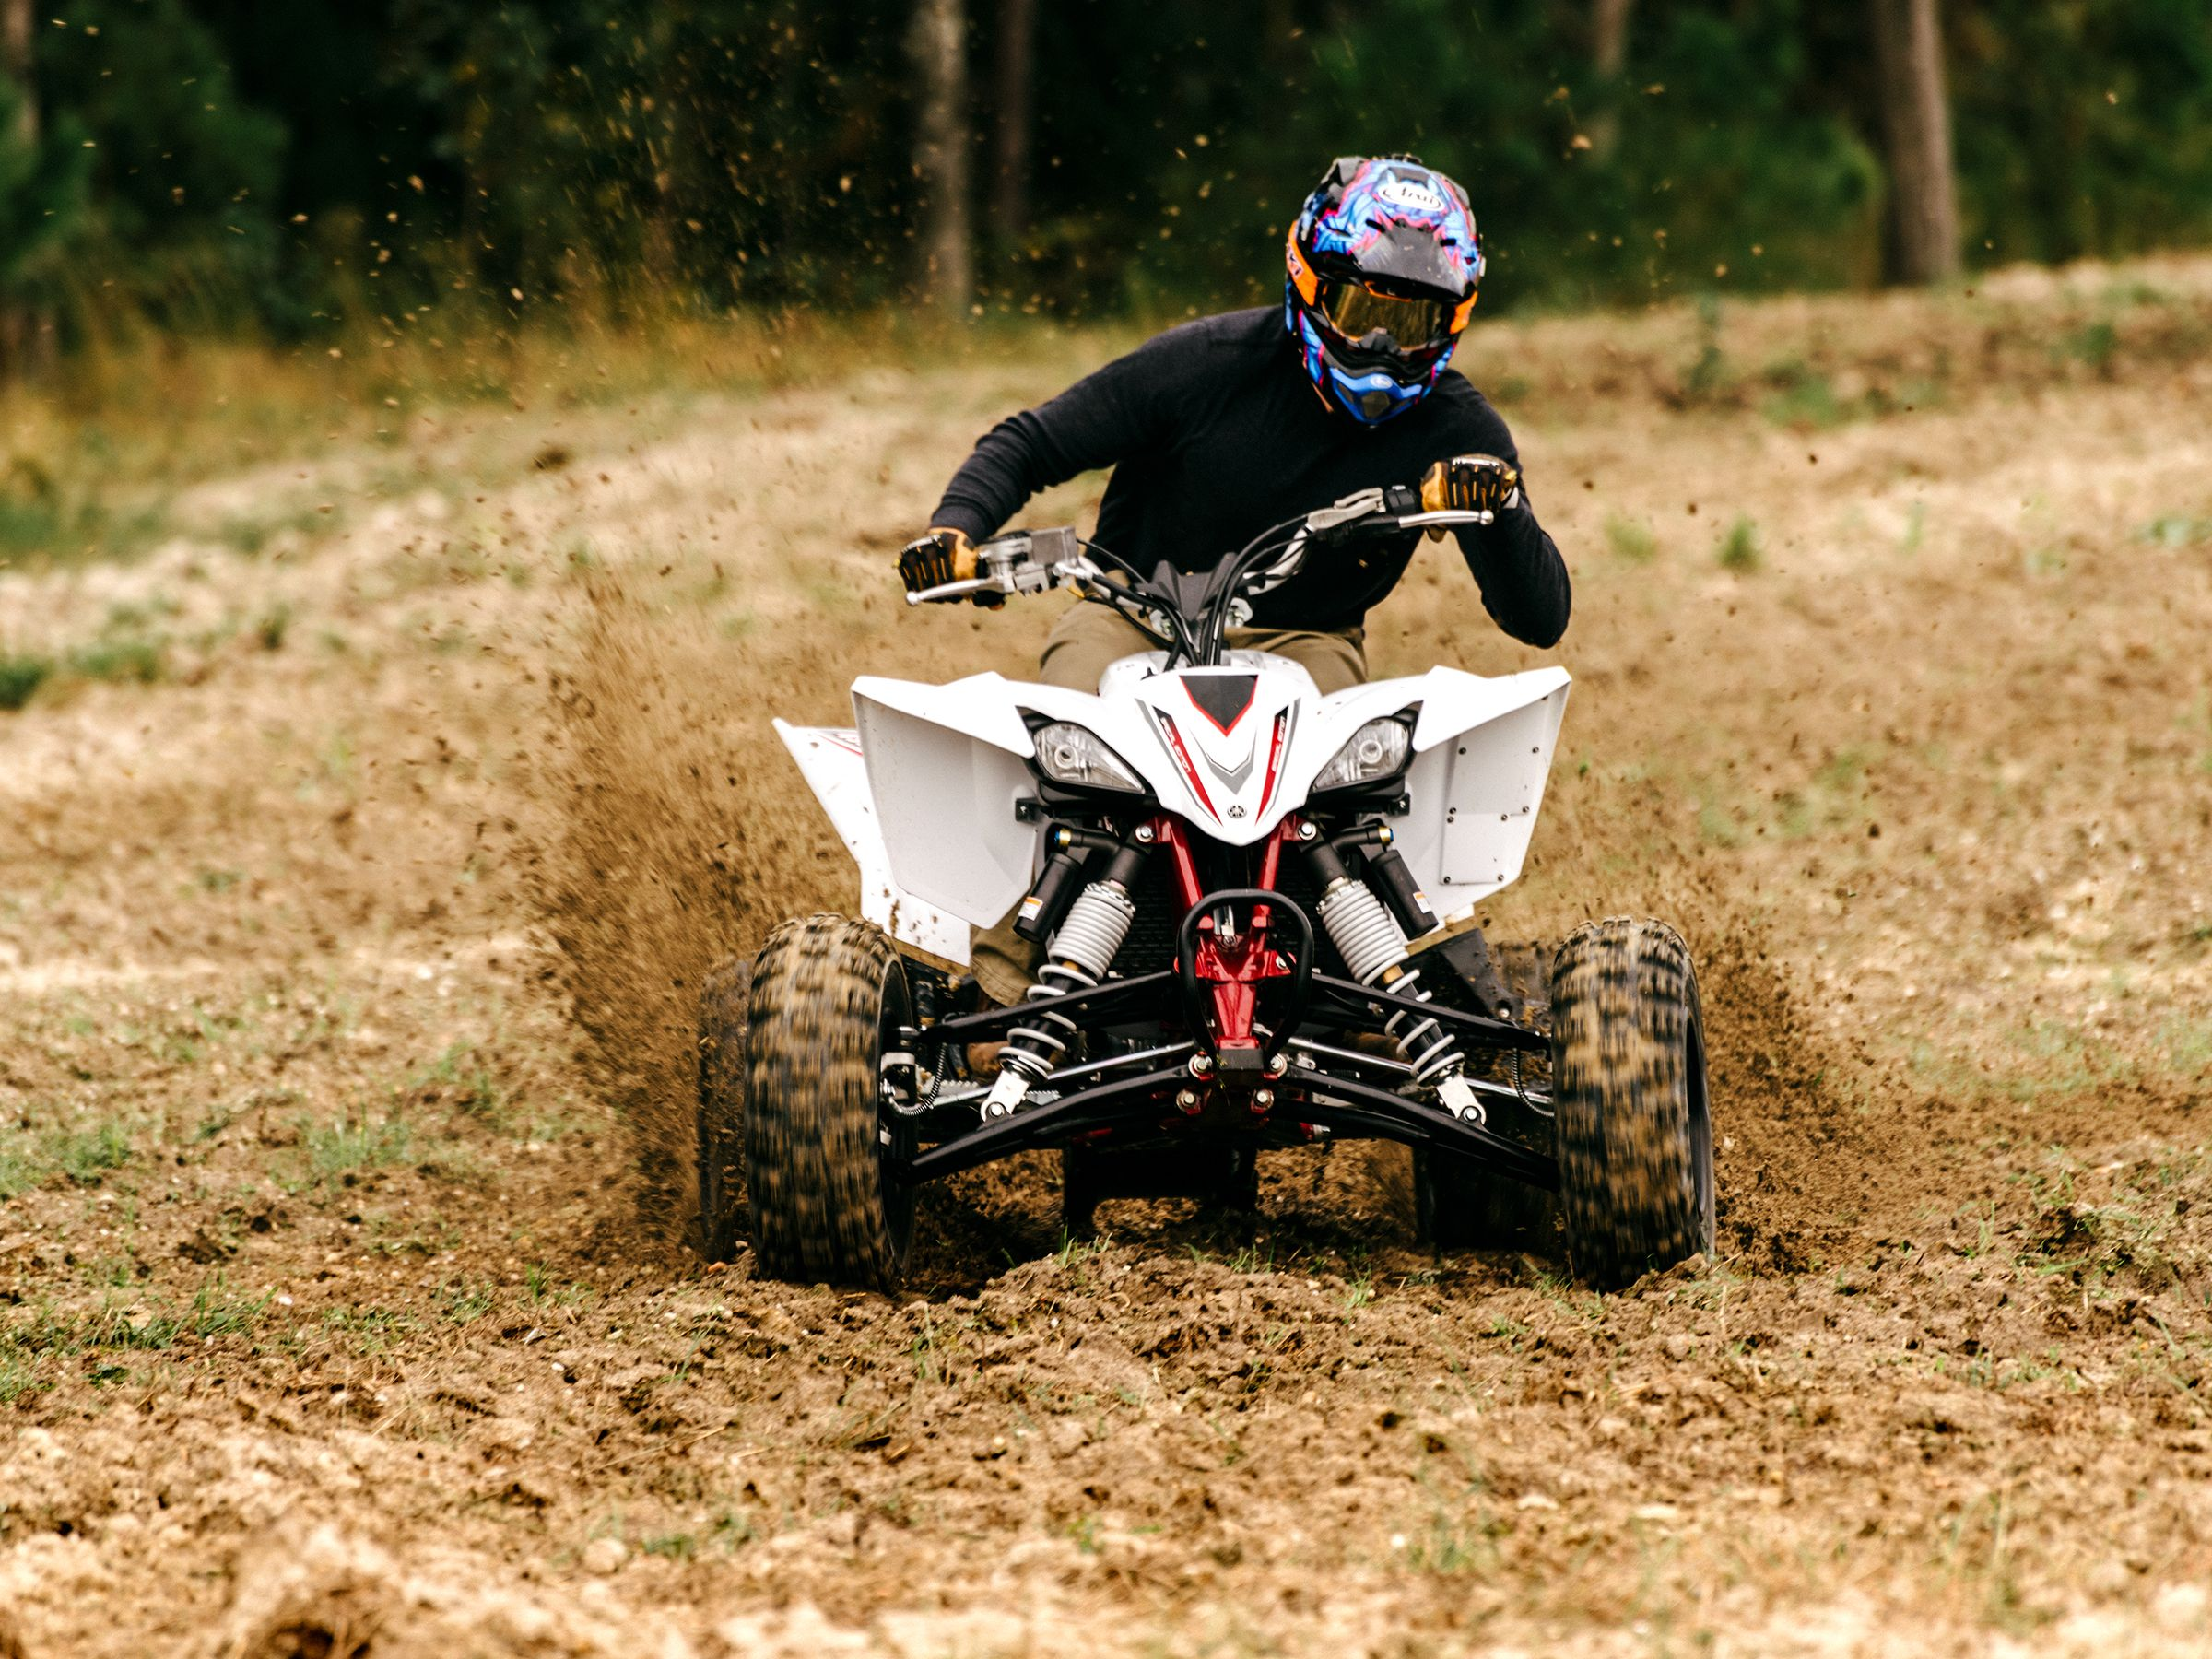 yamaha 450r se atv review the last real sport quad yamaha 450r se atv review the last